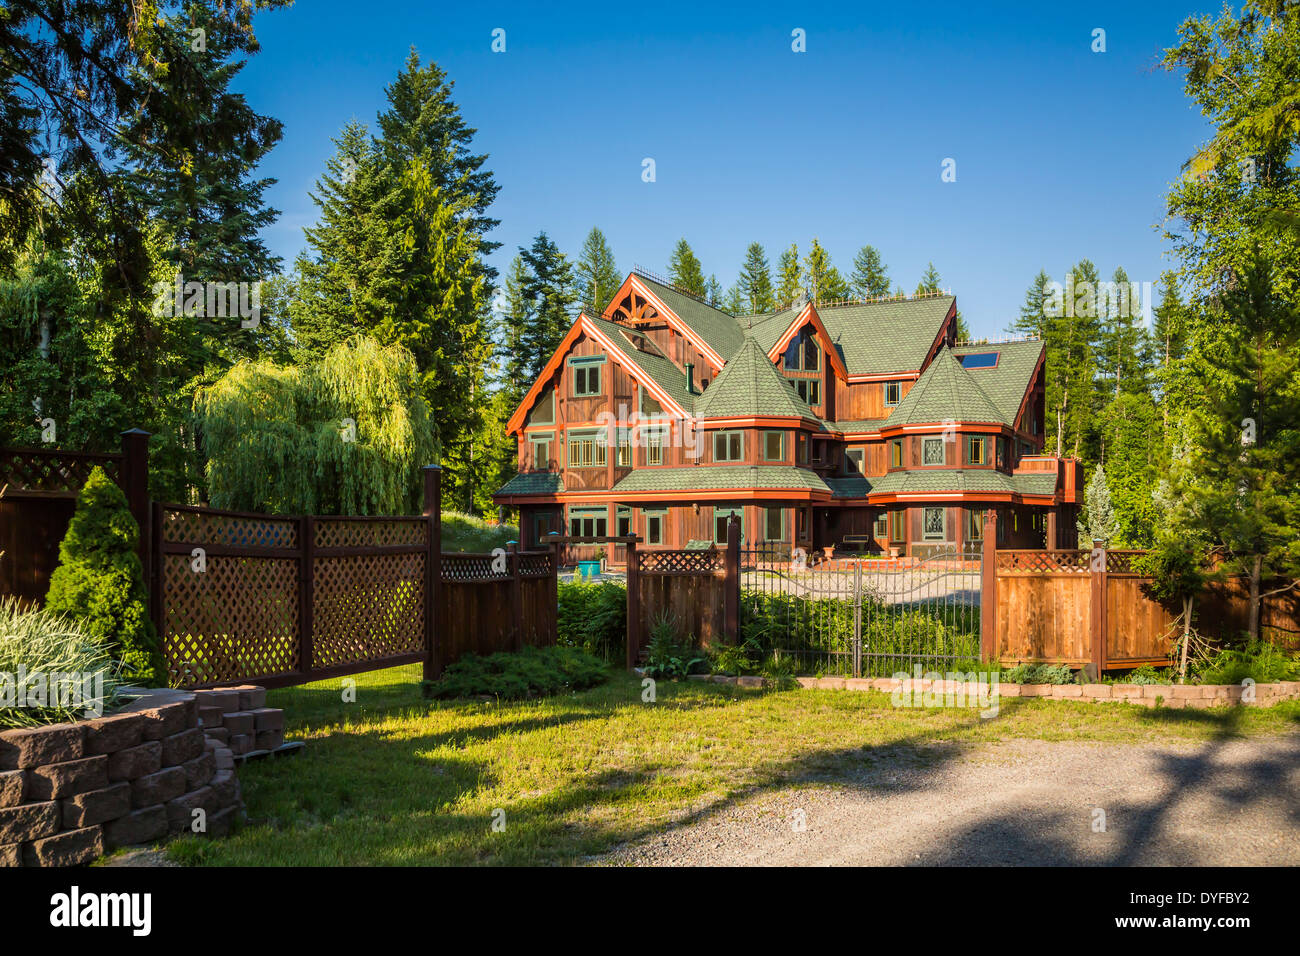 A Large Country Home In The Forest Near Whitefish Lake